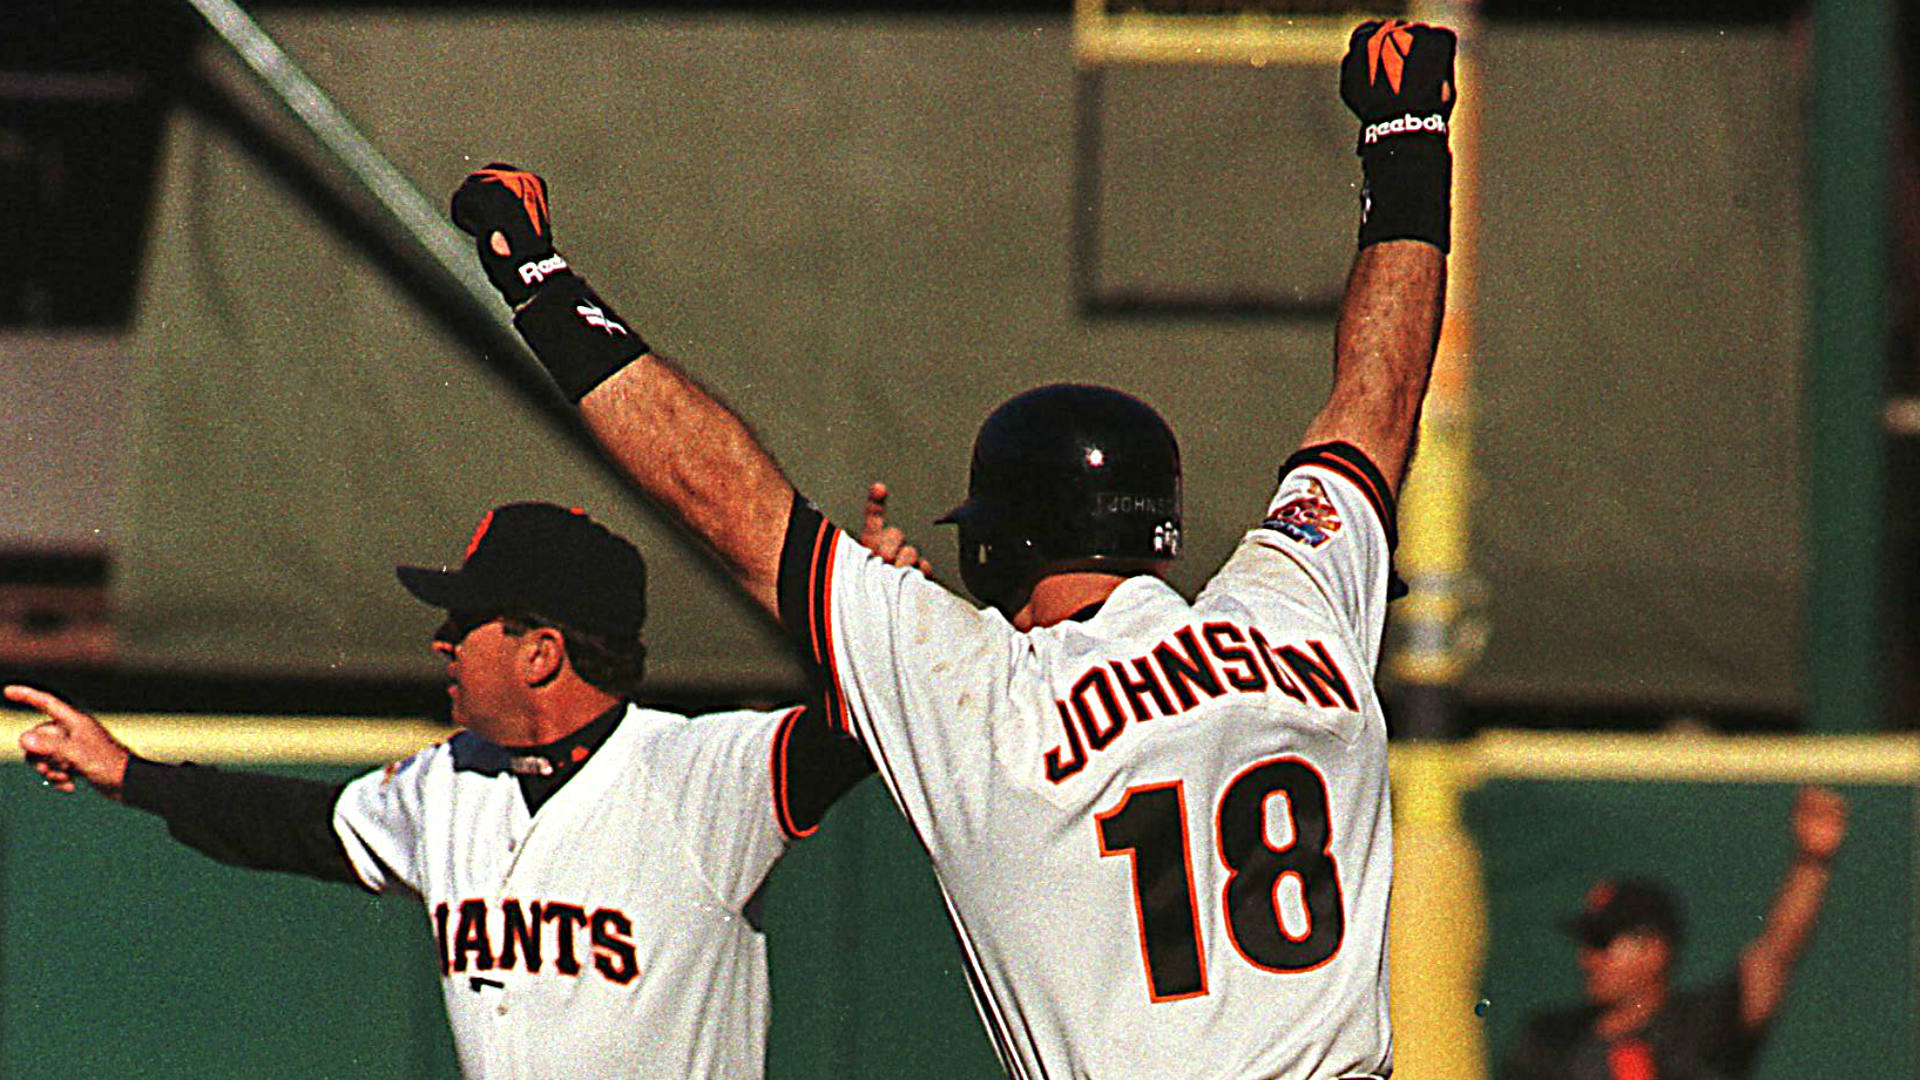 Sept. 18, 1997: When the Giants got the biggest walk-off homer you've never heard of | Sporting News